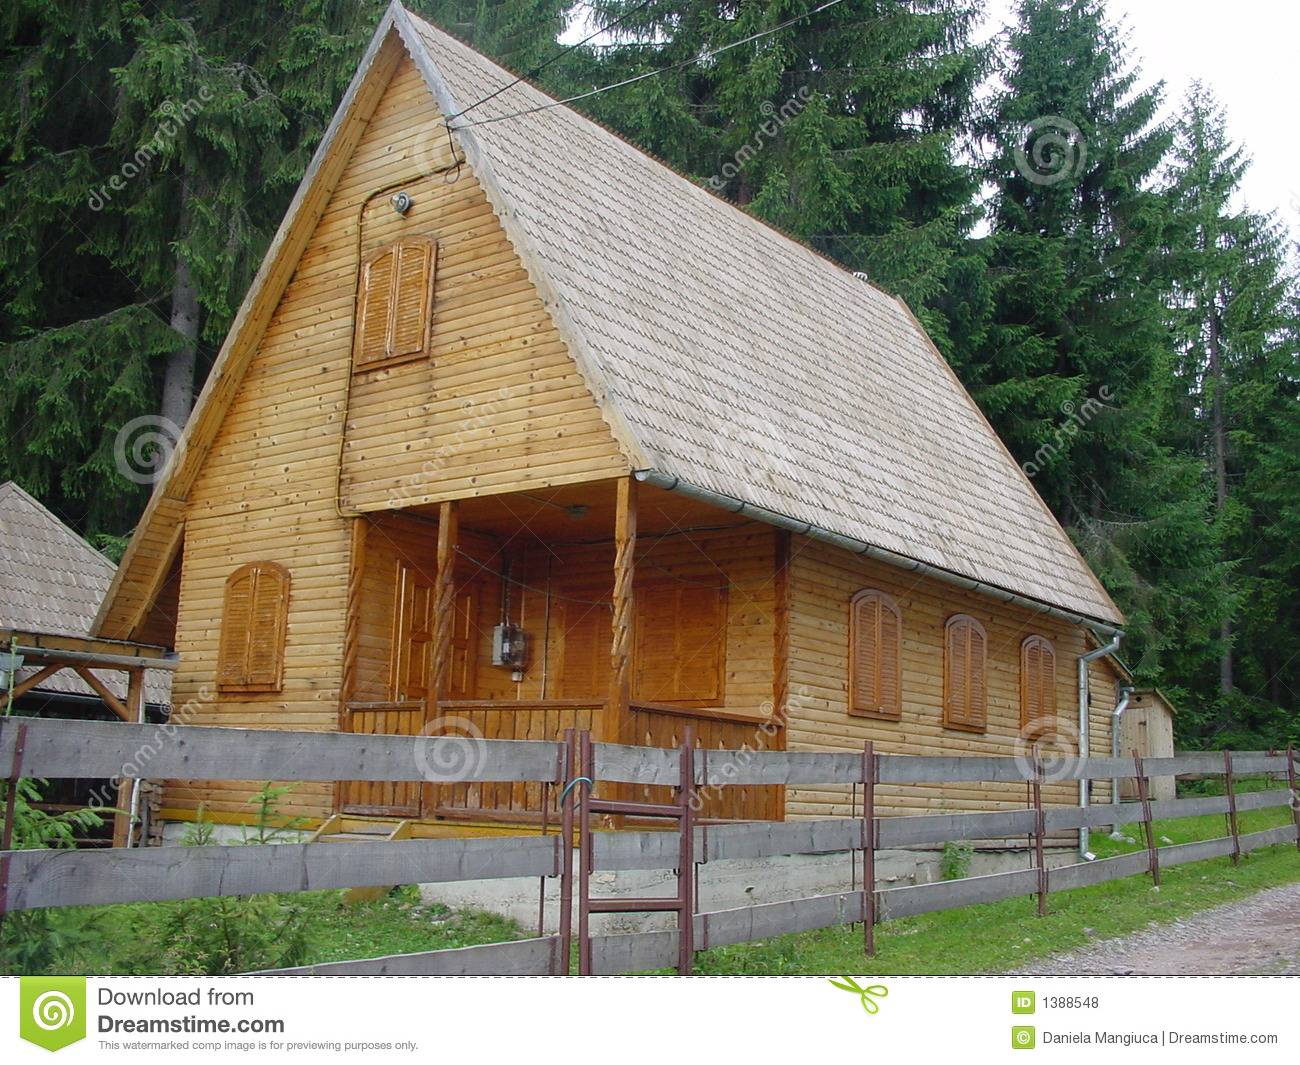 Wood House With Log Walls And Shigle Roof Royalty Free